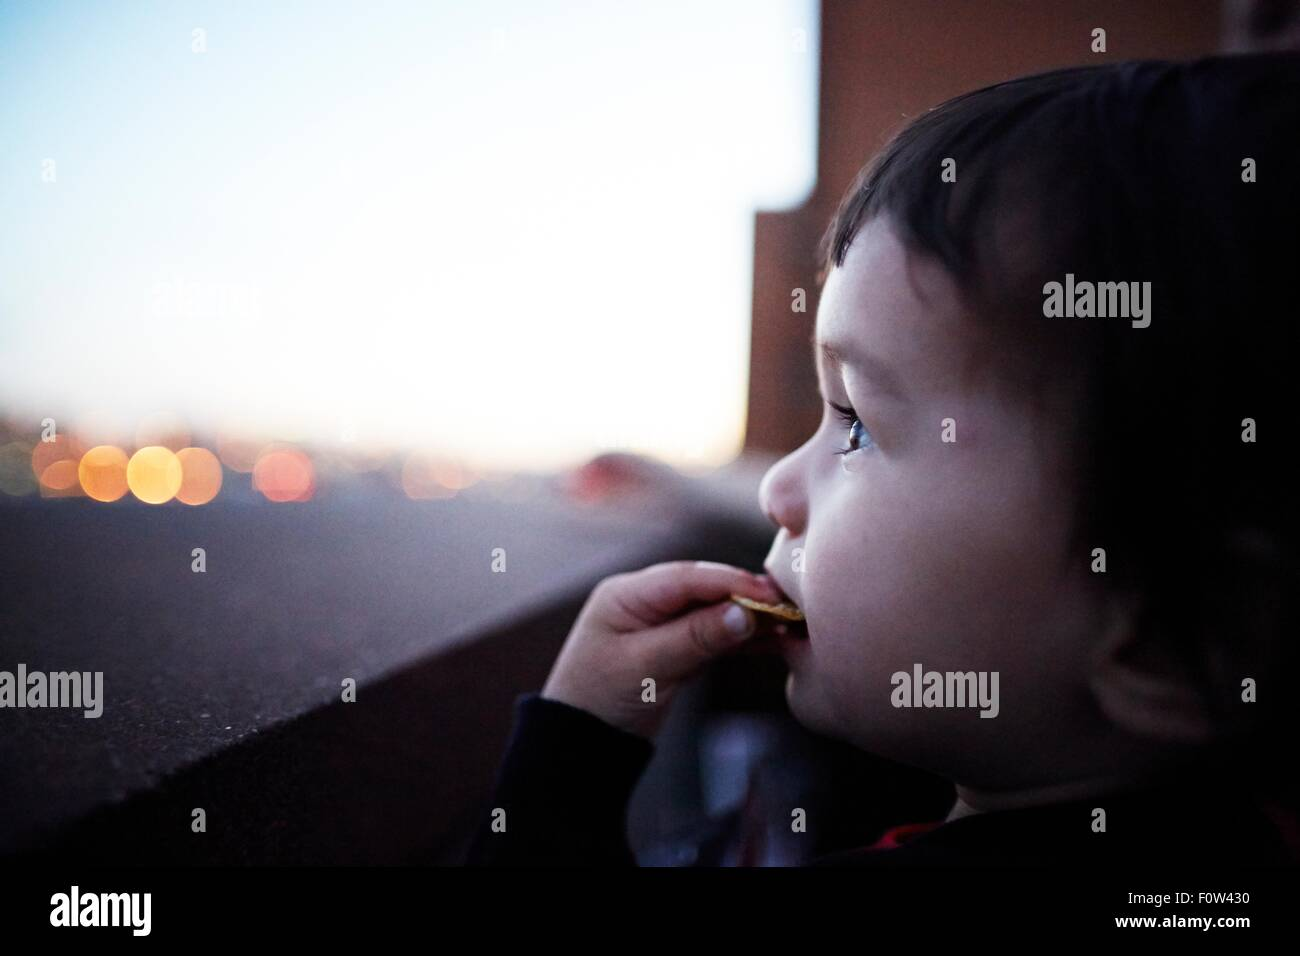 Boy eating biscuit by window - Stock Image